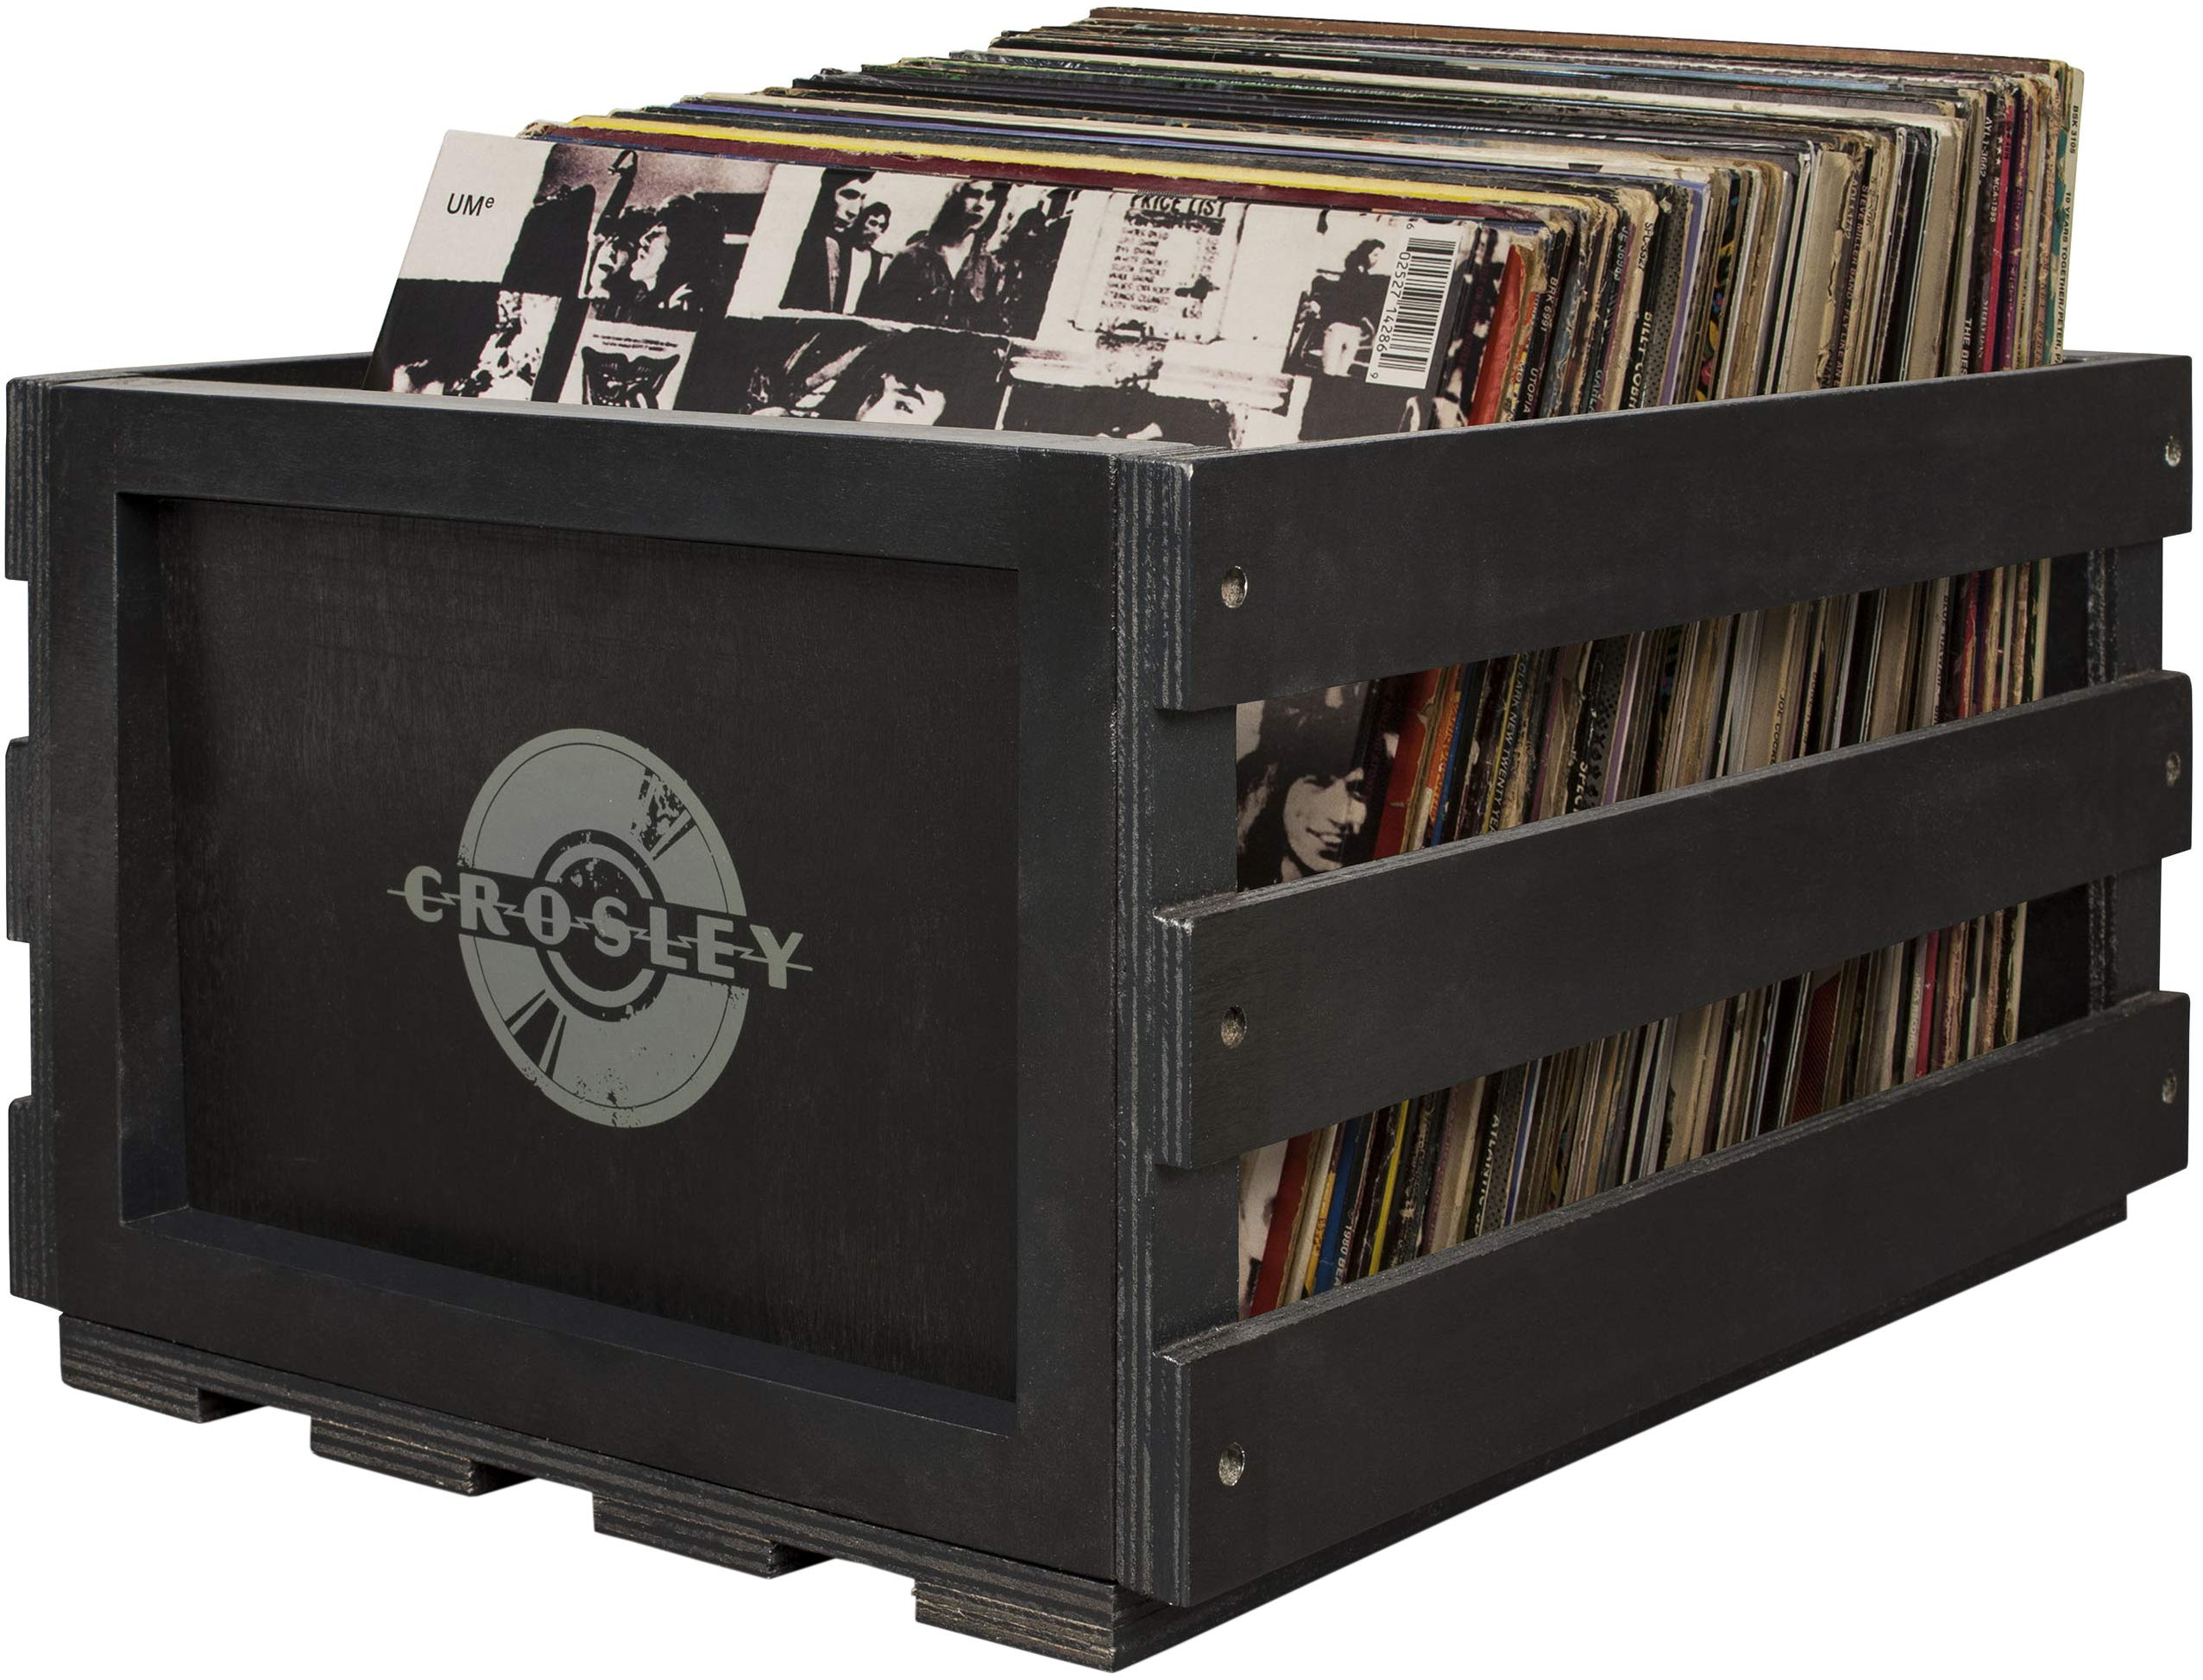 Crosley AC1004A-BK Record Storage Crate Holds up to 75 Albums, Black by Crosley (Image #1)